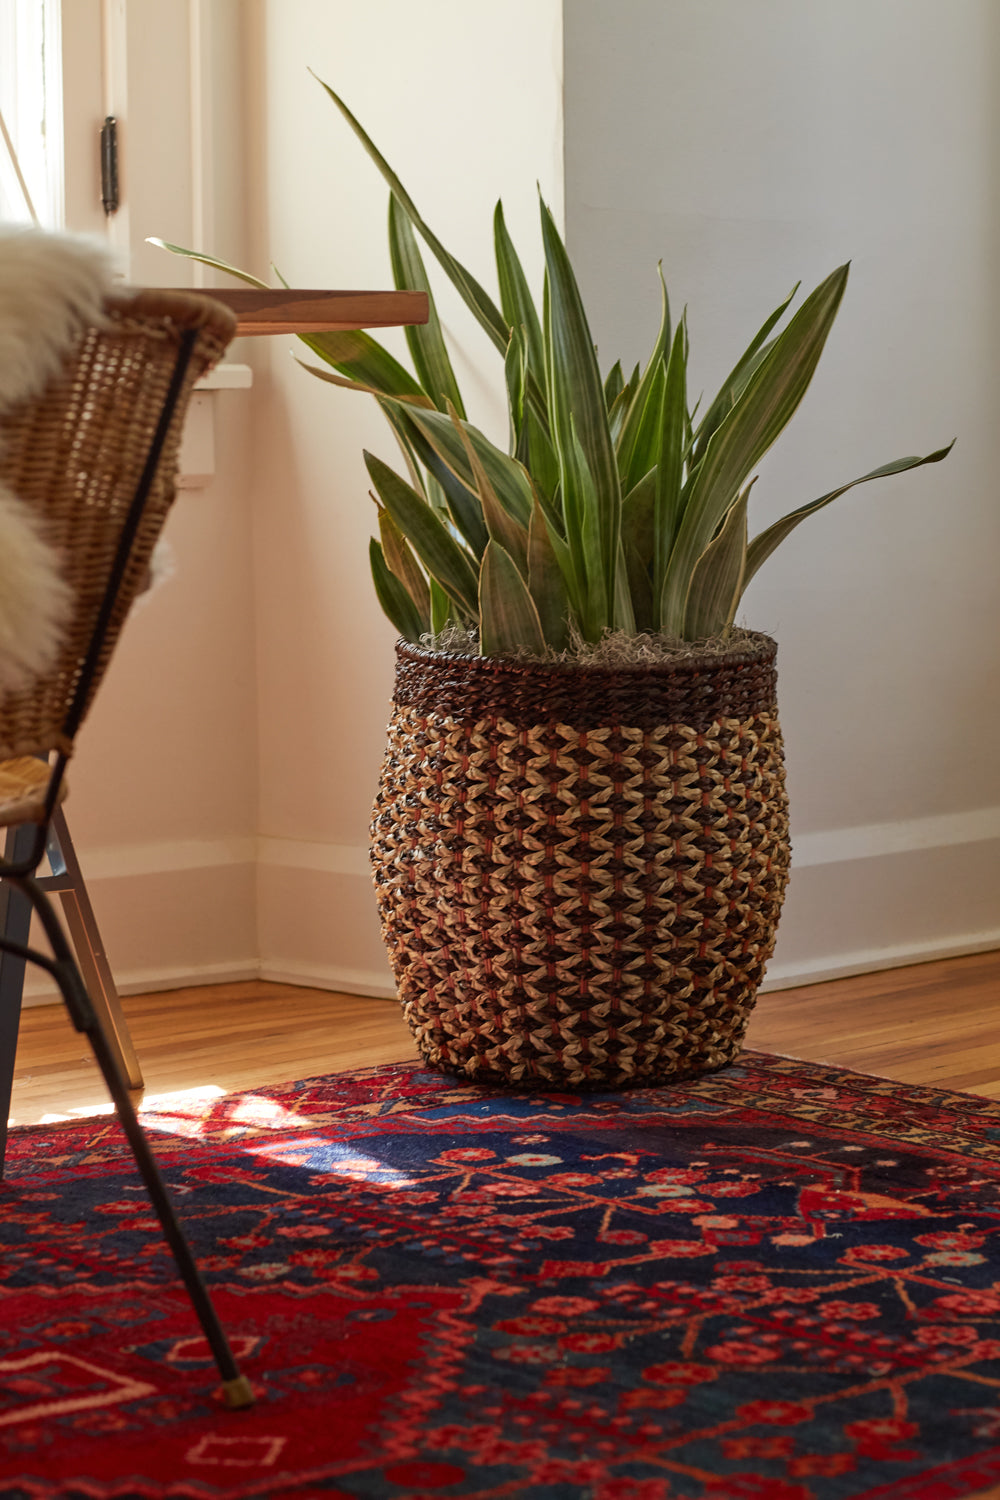 Sansevieria (snake plant) in decorative basket near home office desk